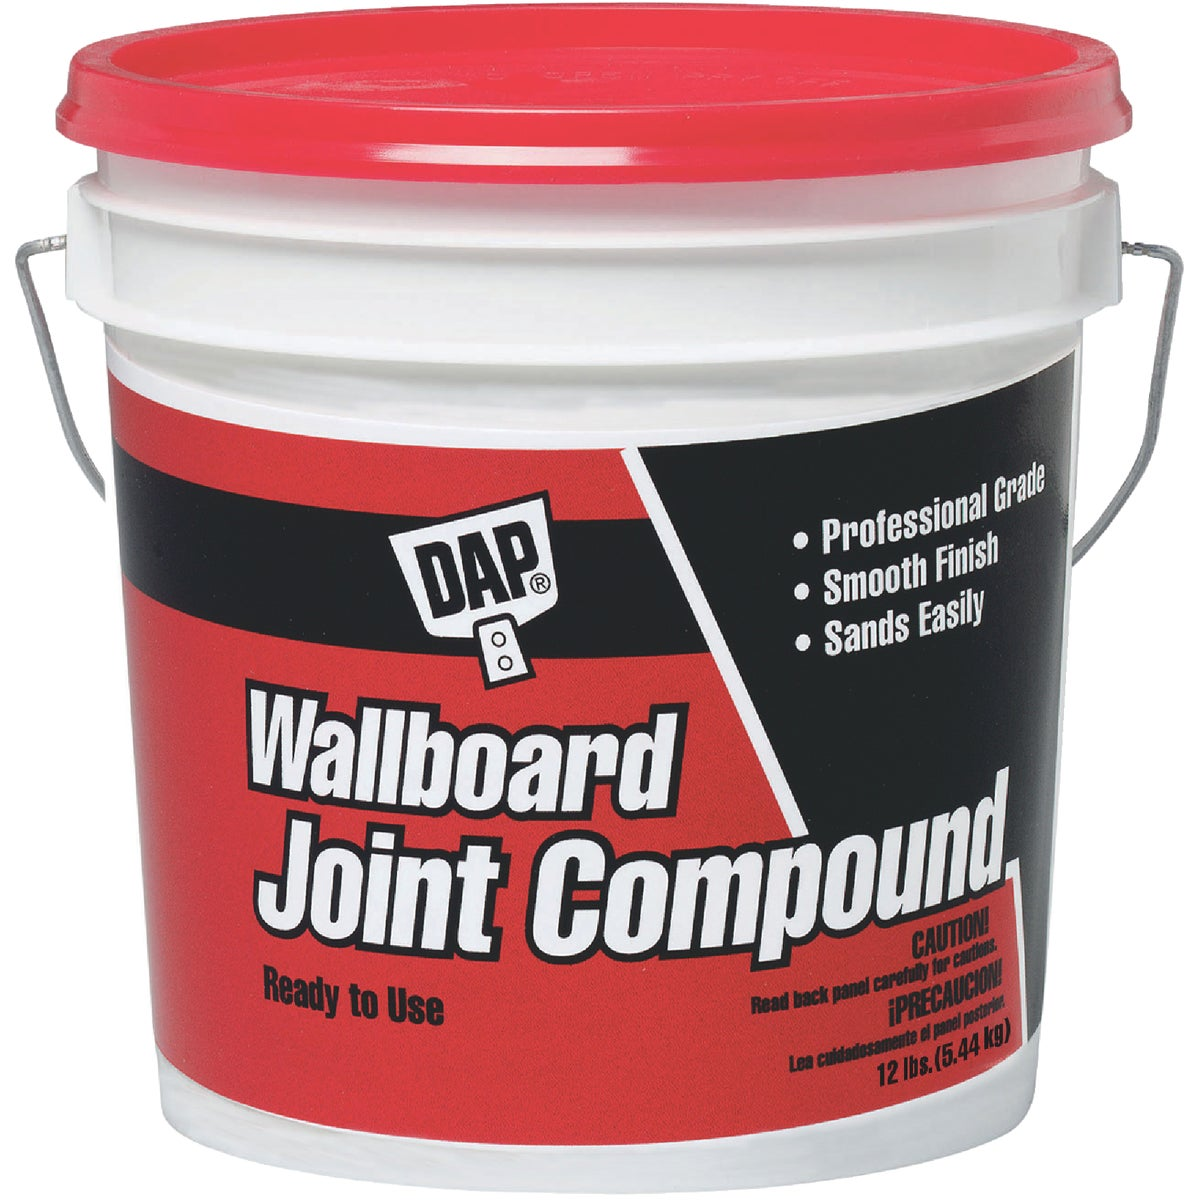 12LB RMIX JOINT COMPOUND - 10102 by Dap Inc